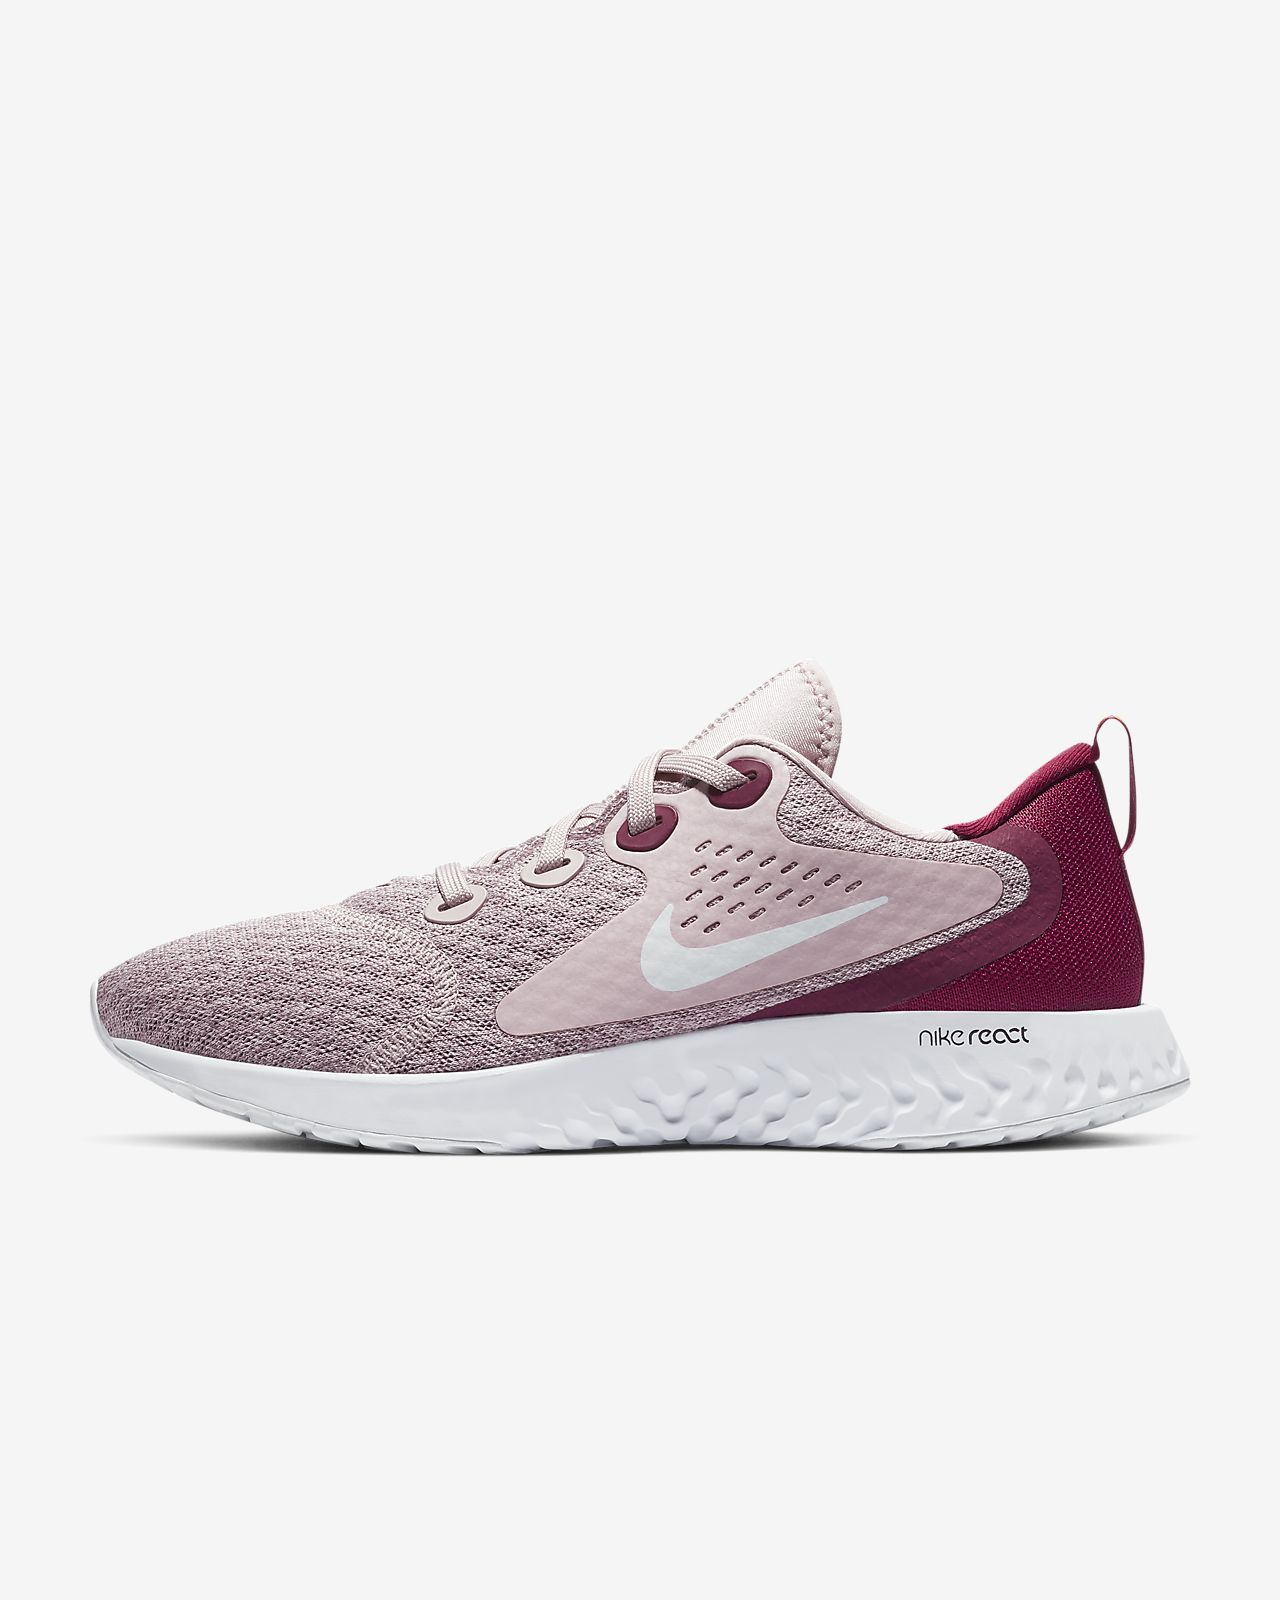 finest selection 7fb94 a7d04 Women s Running Shoe. Nike Legend React